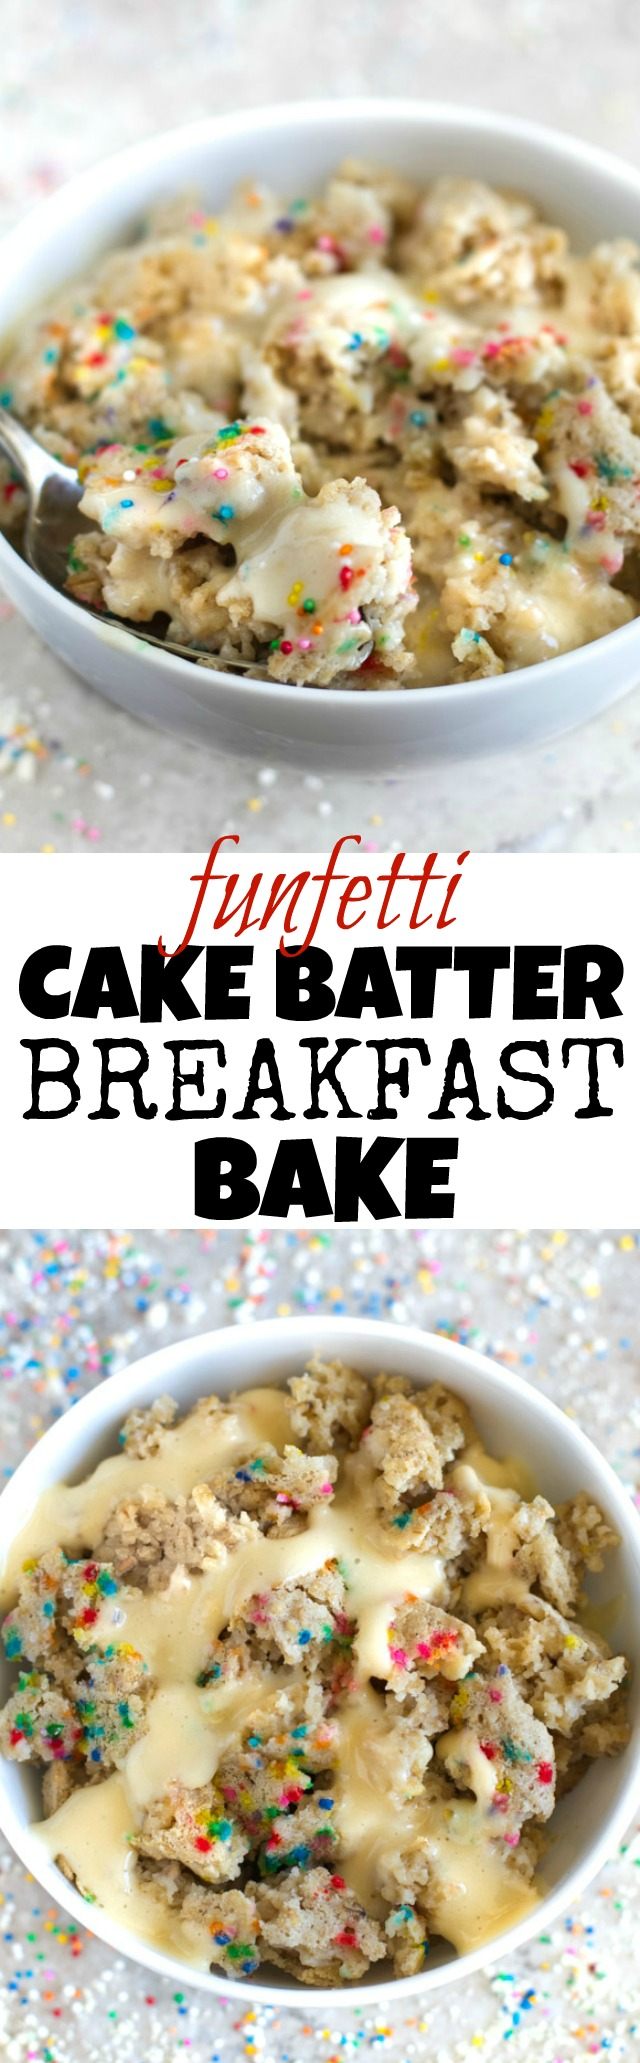 FUN and DELICIOUS! This healthy Funfetti Cake Batter Breakfast Bake tastes like dessert but is made without any flour, butter, oil, or refined sugar! Recipe via runningwithspoons.com #vegan #glutenfree #birthday